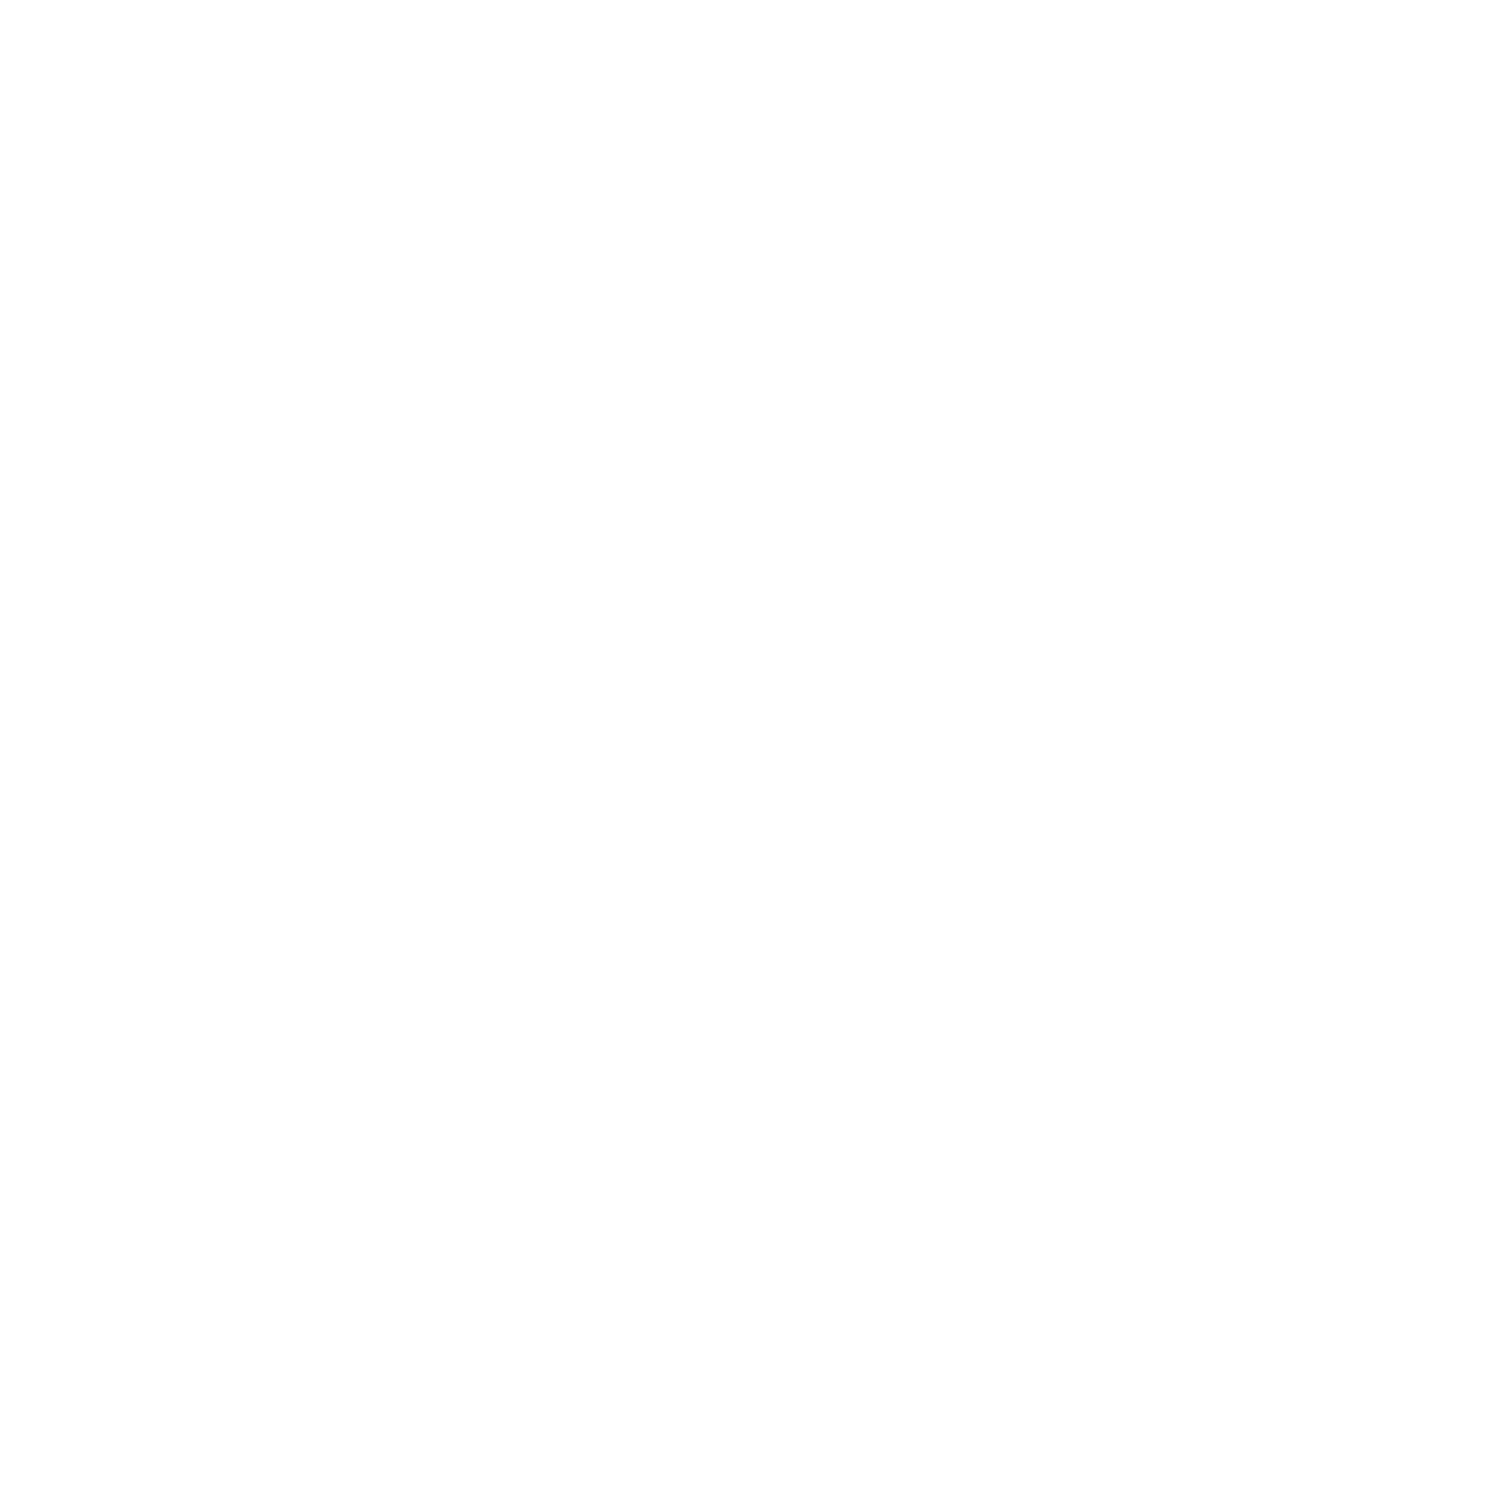 THE BASEMENT THEATRE - GRUNGE LOGO